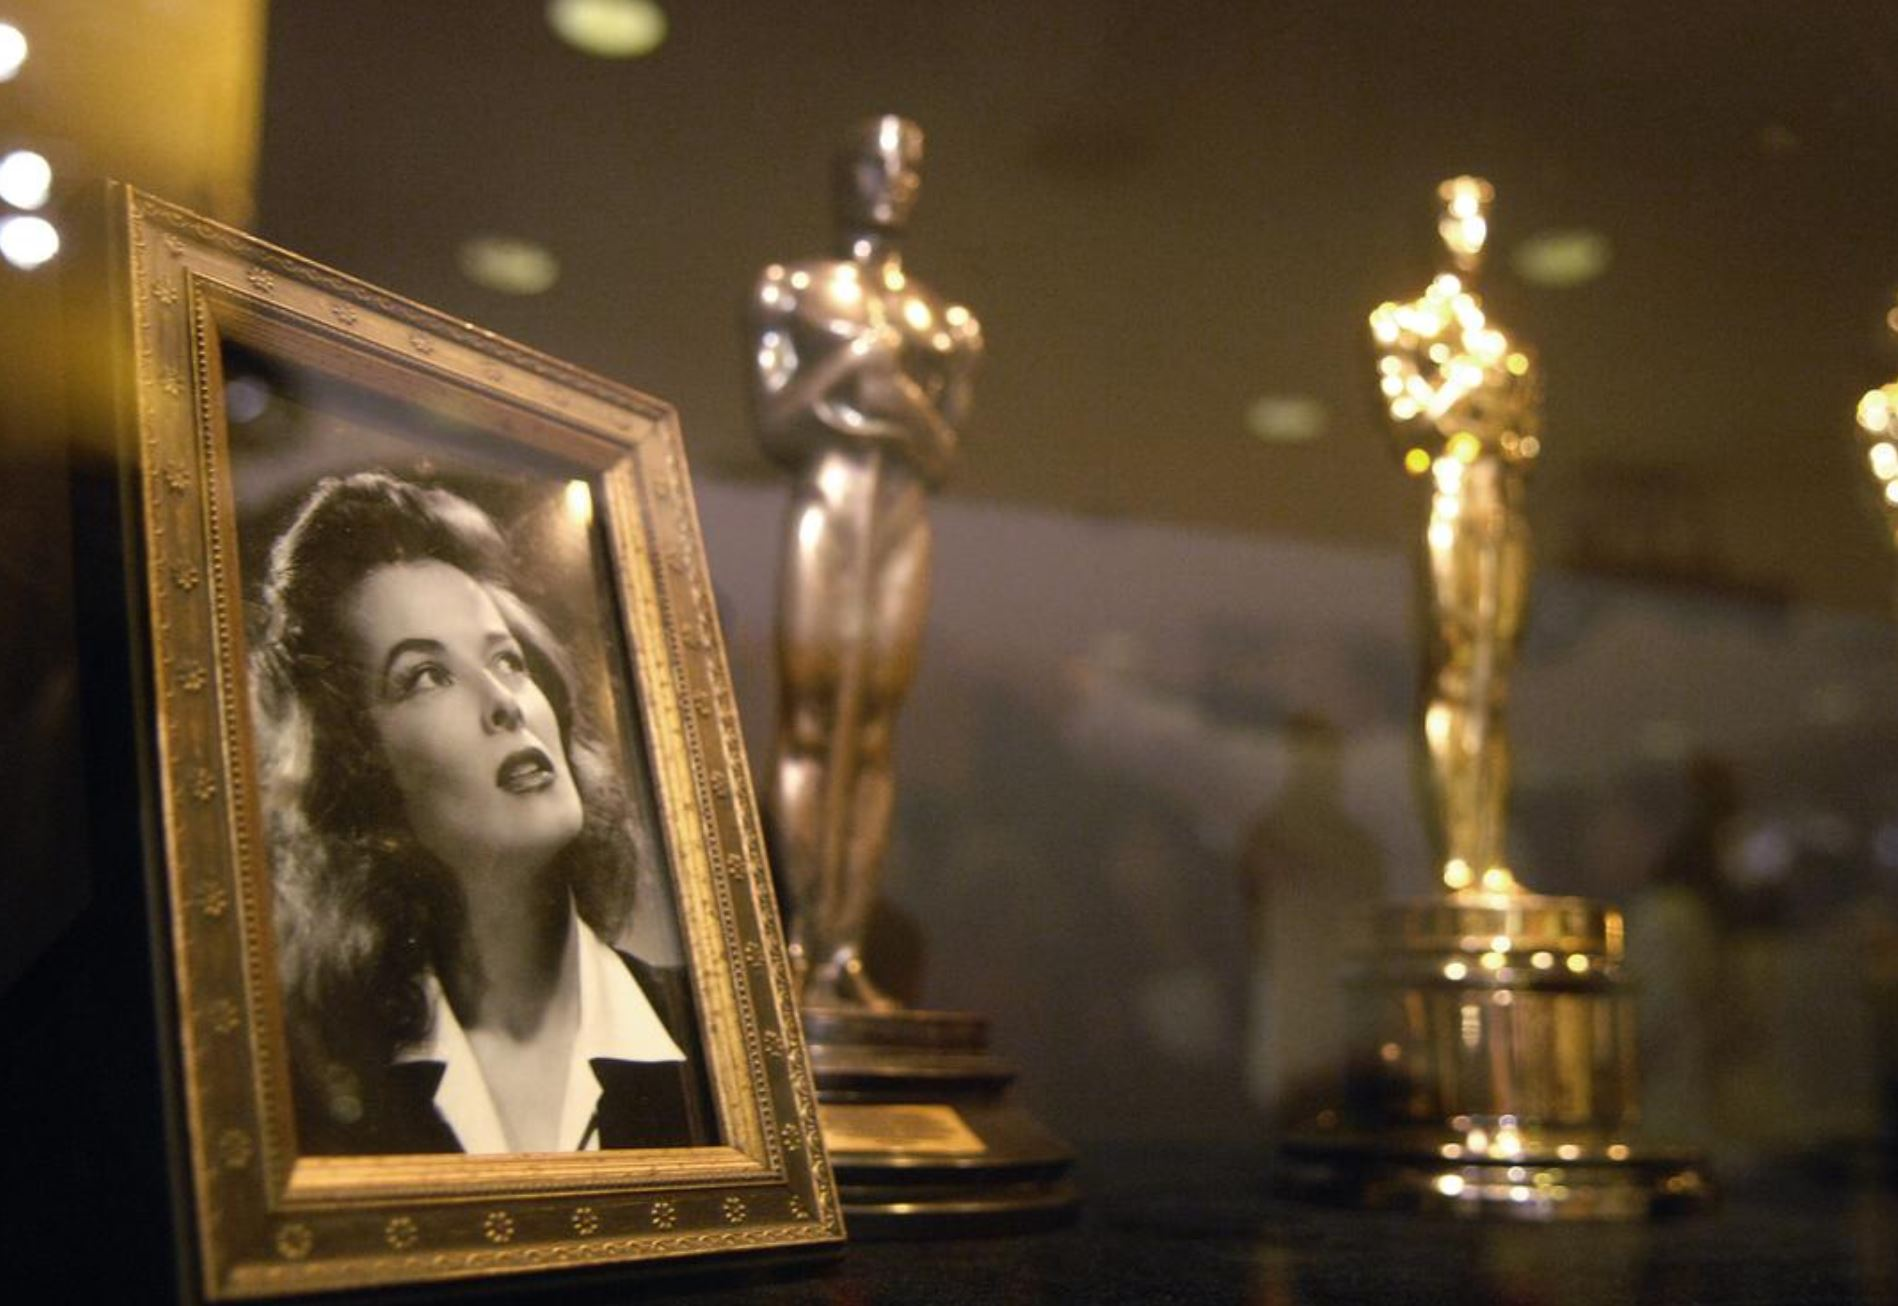 Katharine Hepburn's love letters to Howard Hughes up for auction